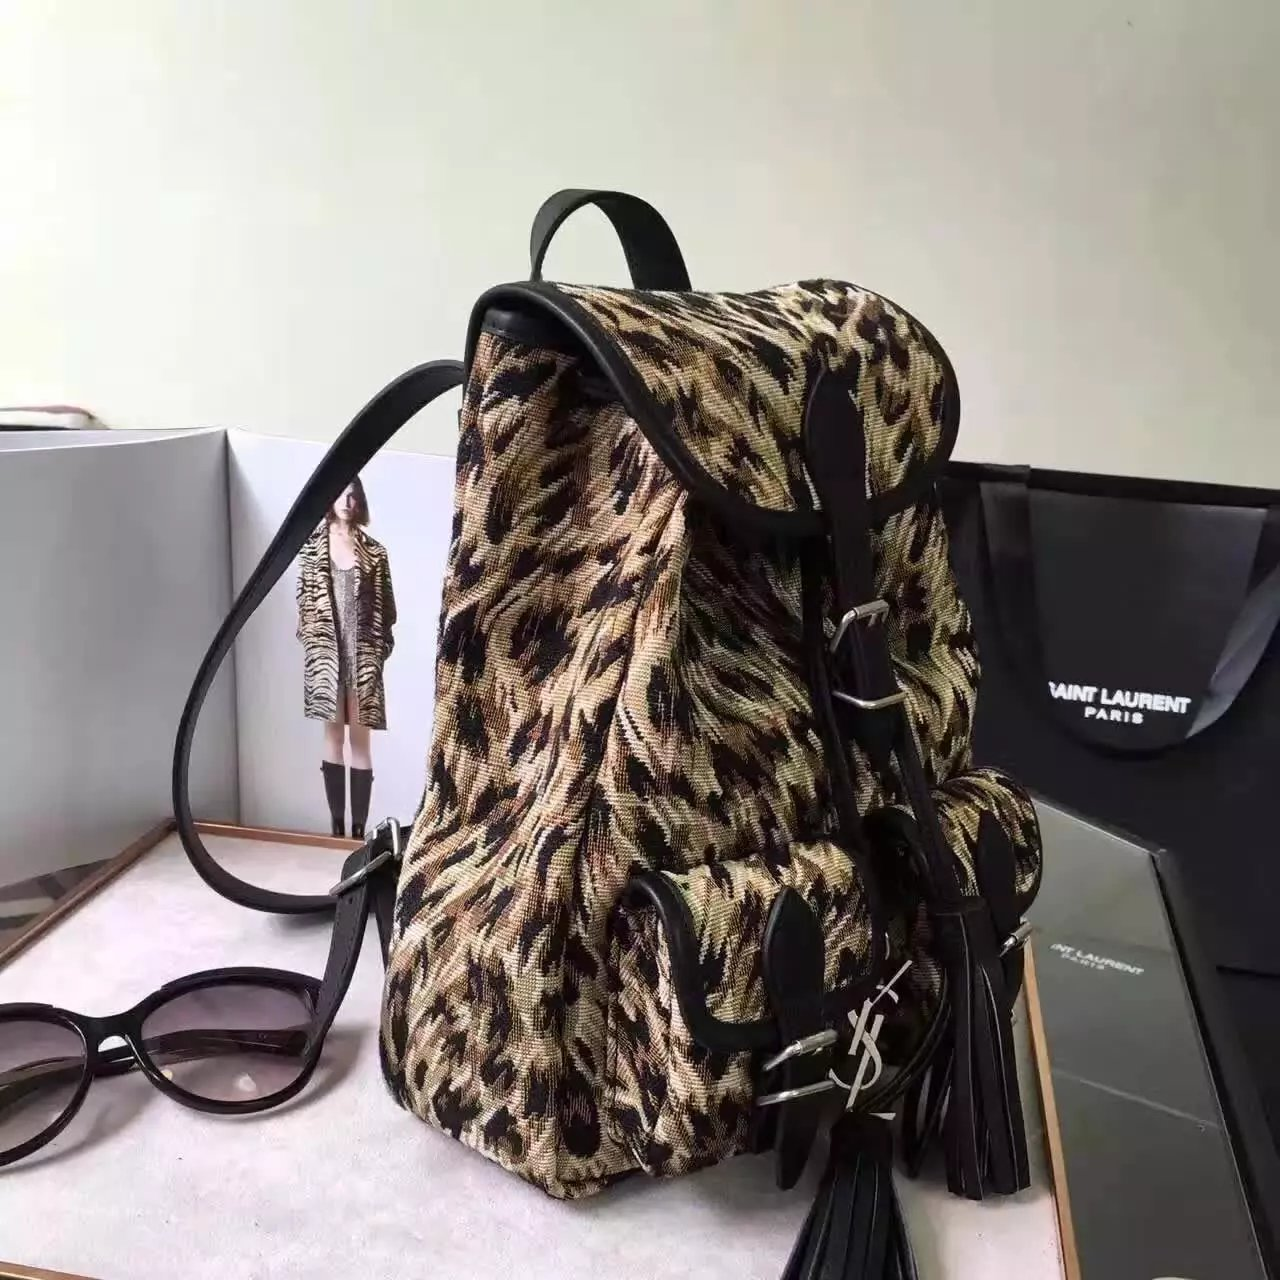 Limited Edition!2016 New Saint Laurent Bag Cheap Sale-Saint Laurent Small Festival Backpack in Natural and Black Leopard Woven Polyester and Cotton and Black Leather